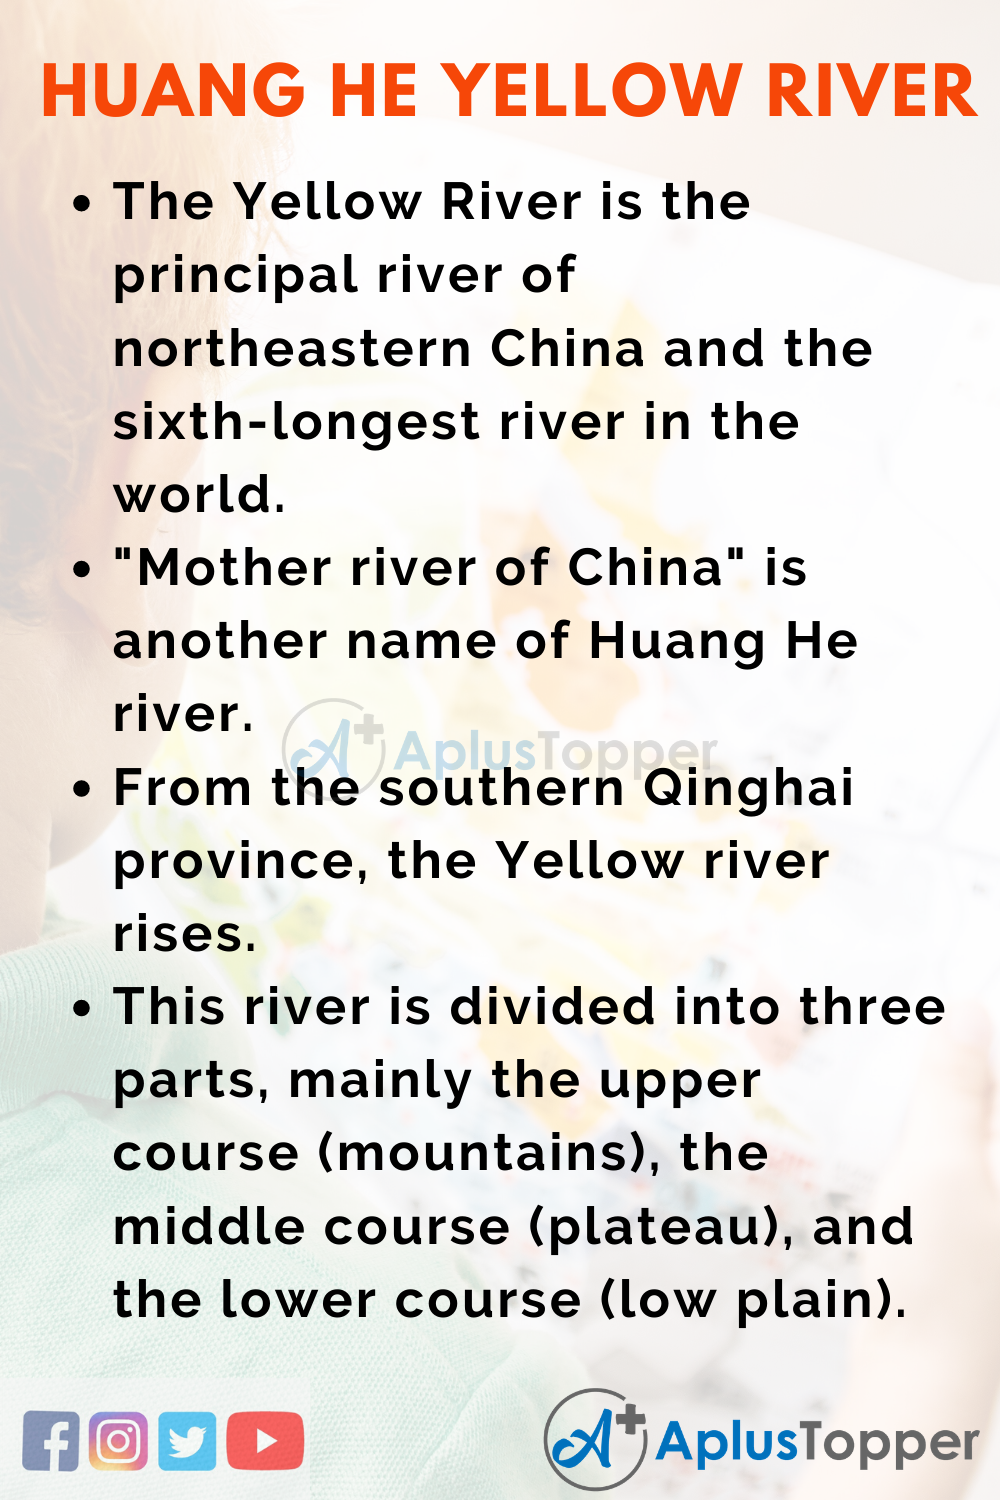 10 Lines on Huang He Yellow River for Higher Class Students